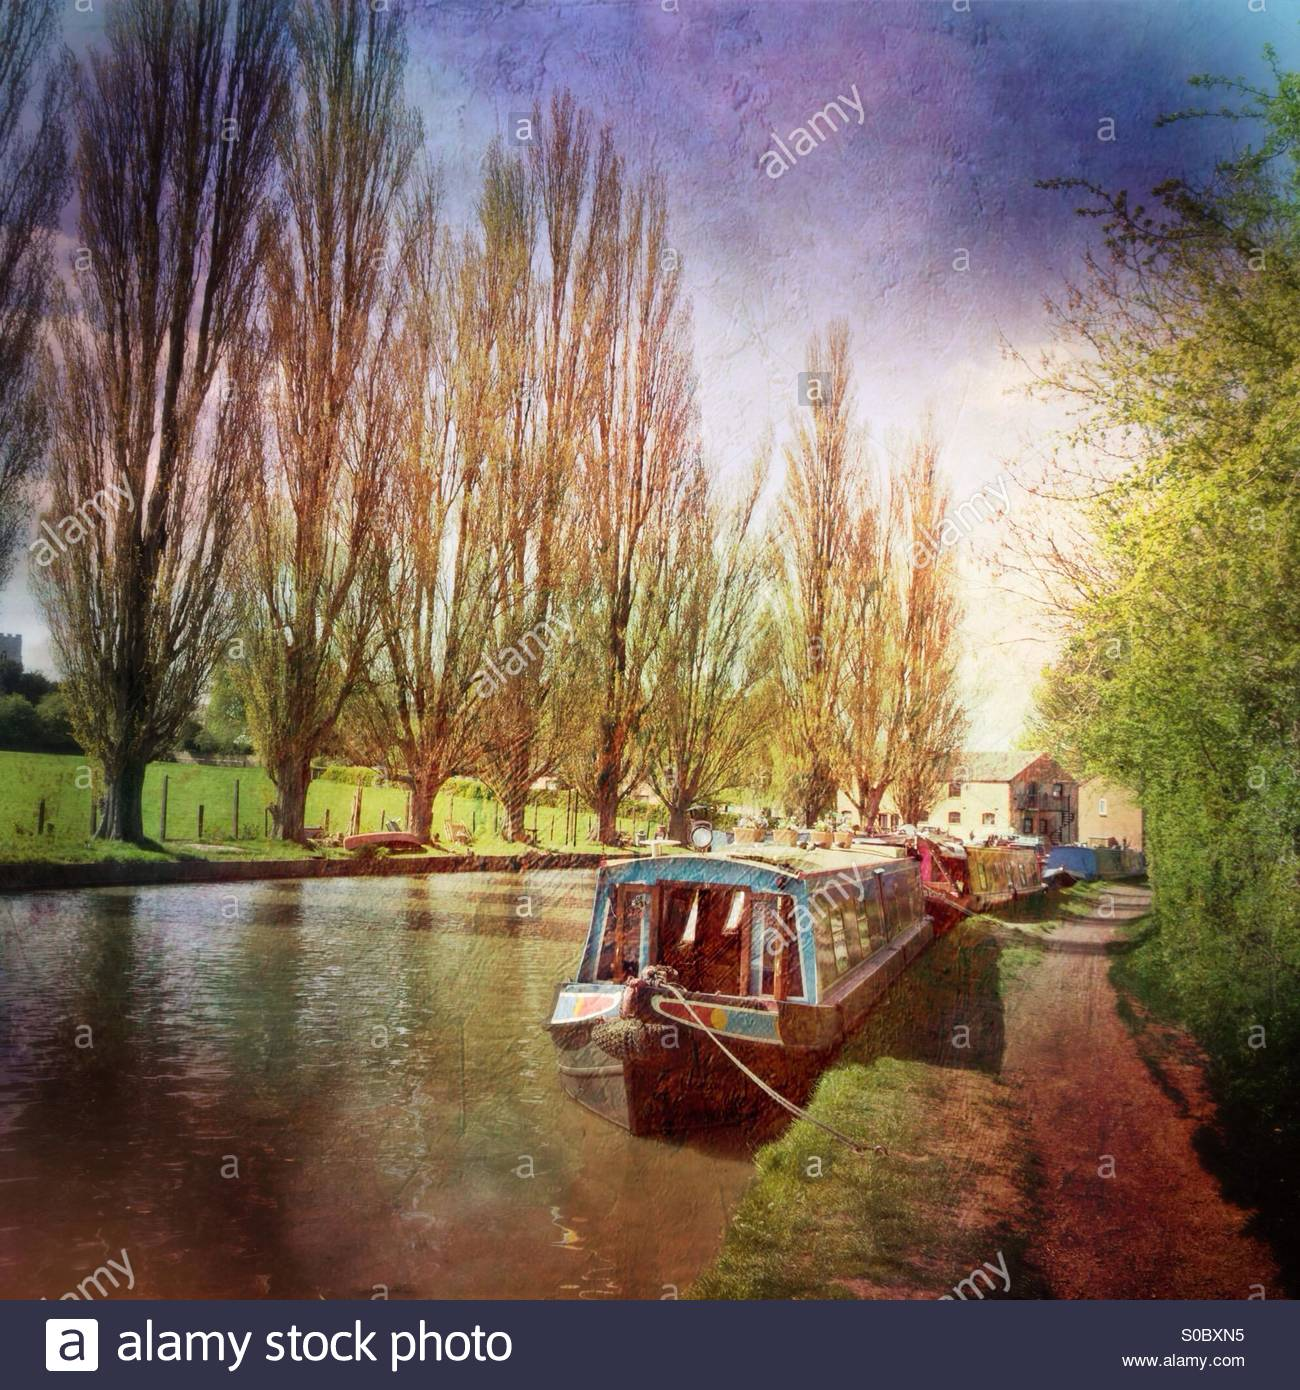 Narrowboats on the Grand Union Canal at Cosgrove, Northamptonshire - Stock Image